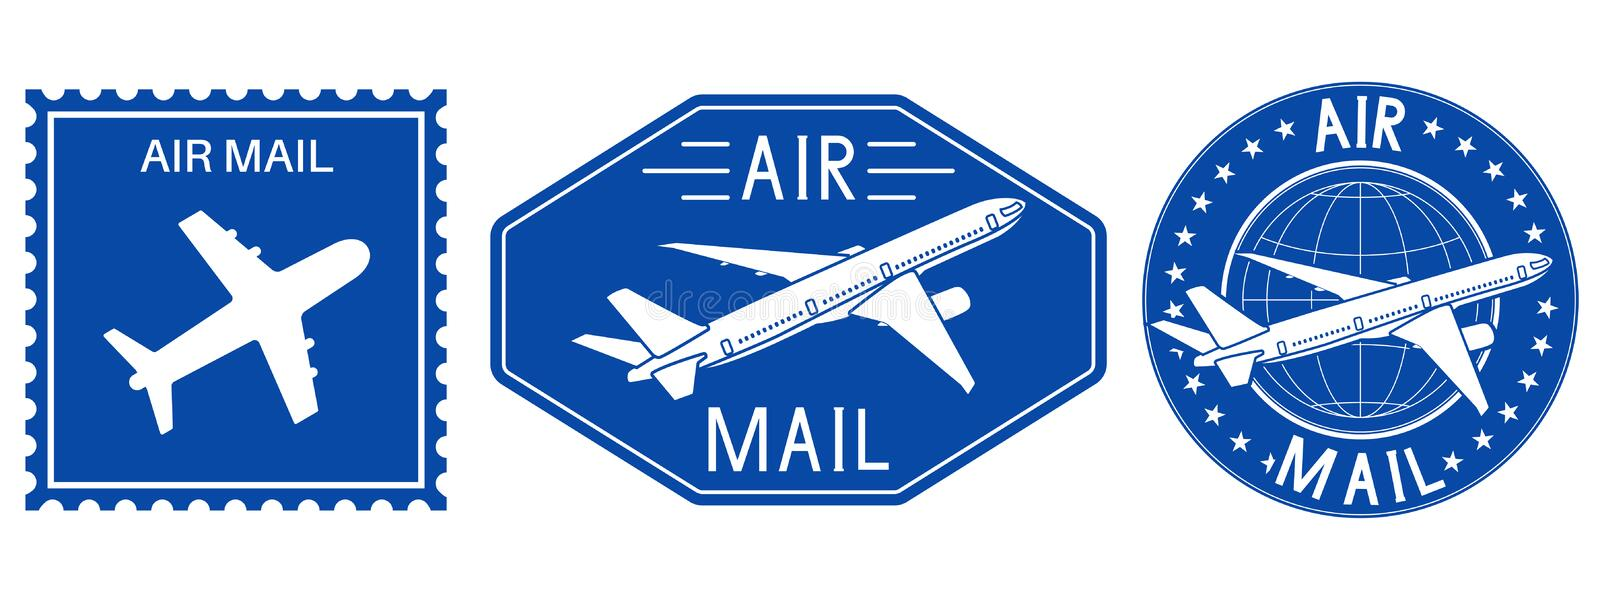 Blue postal stamps. Air mail sign with plane royalty free illustration